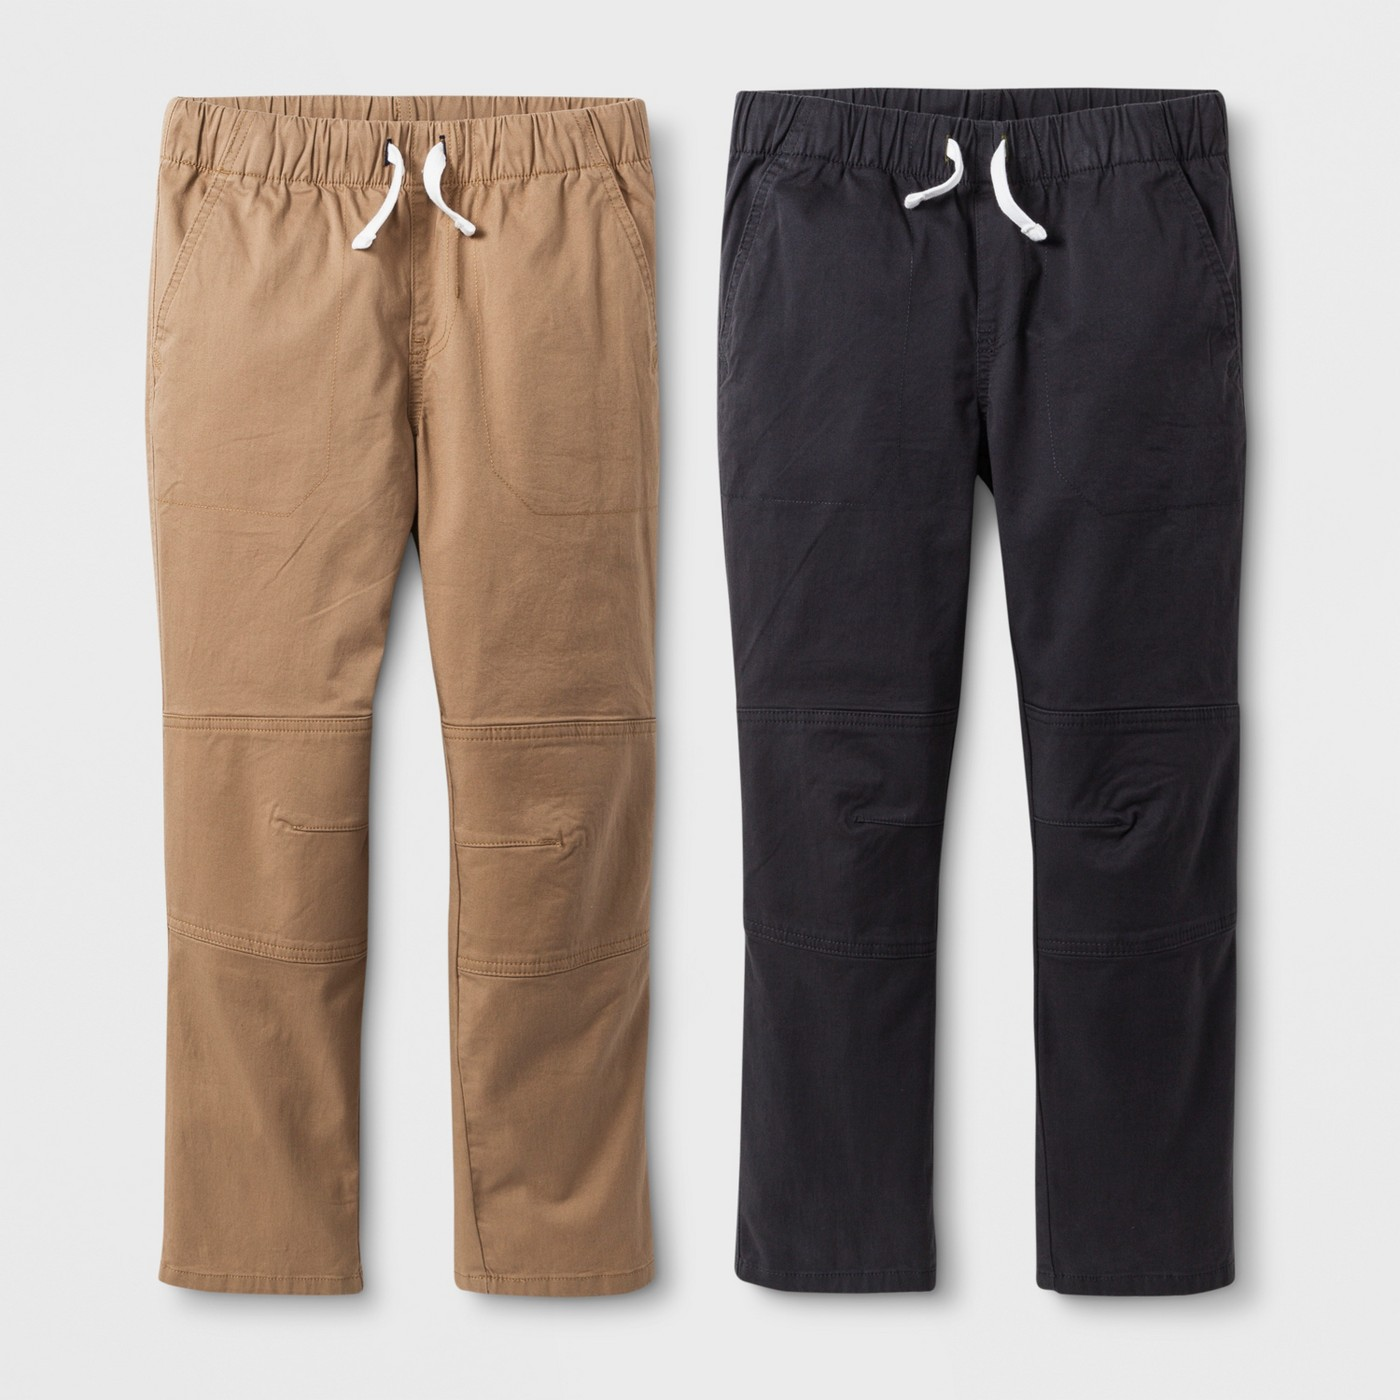 Boys' 2-Pack Pull-On Pants - $19